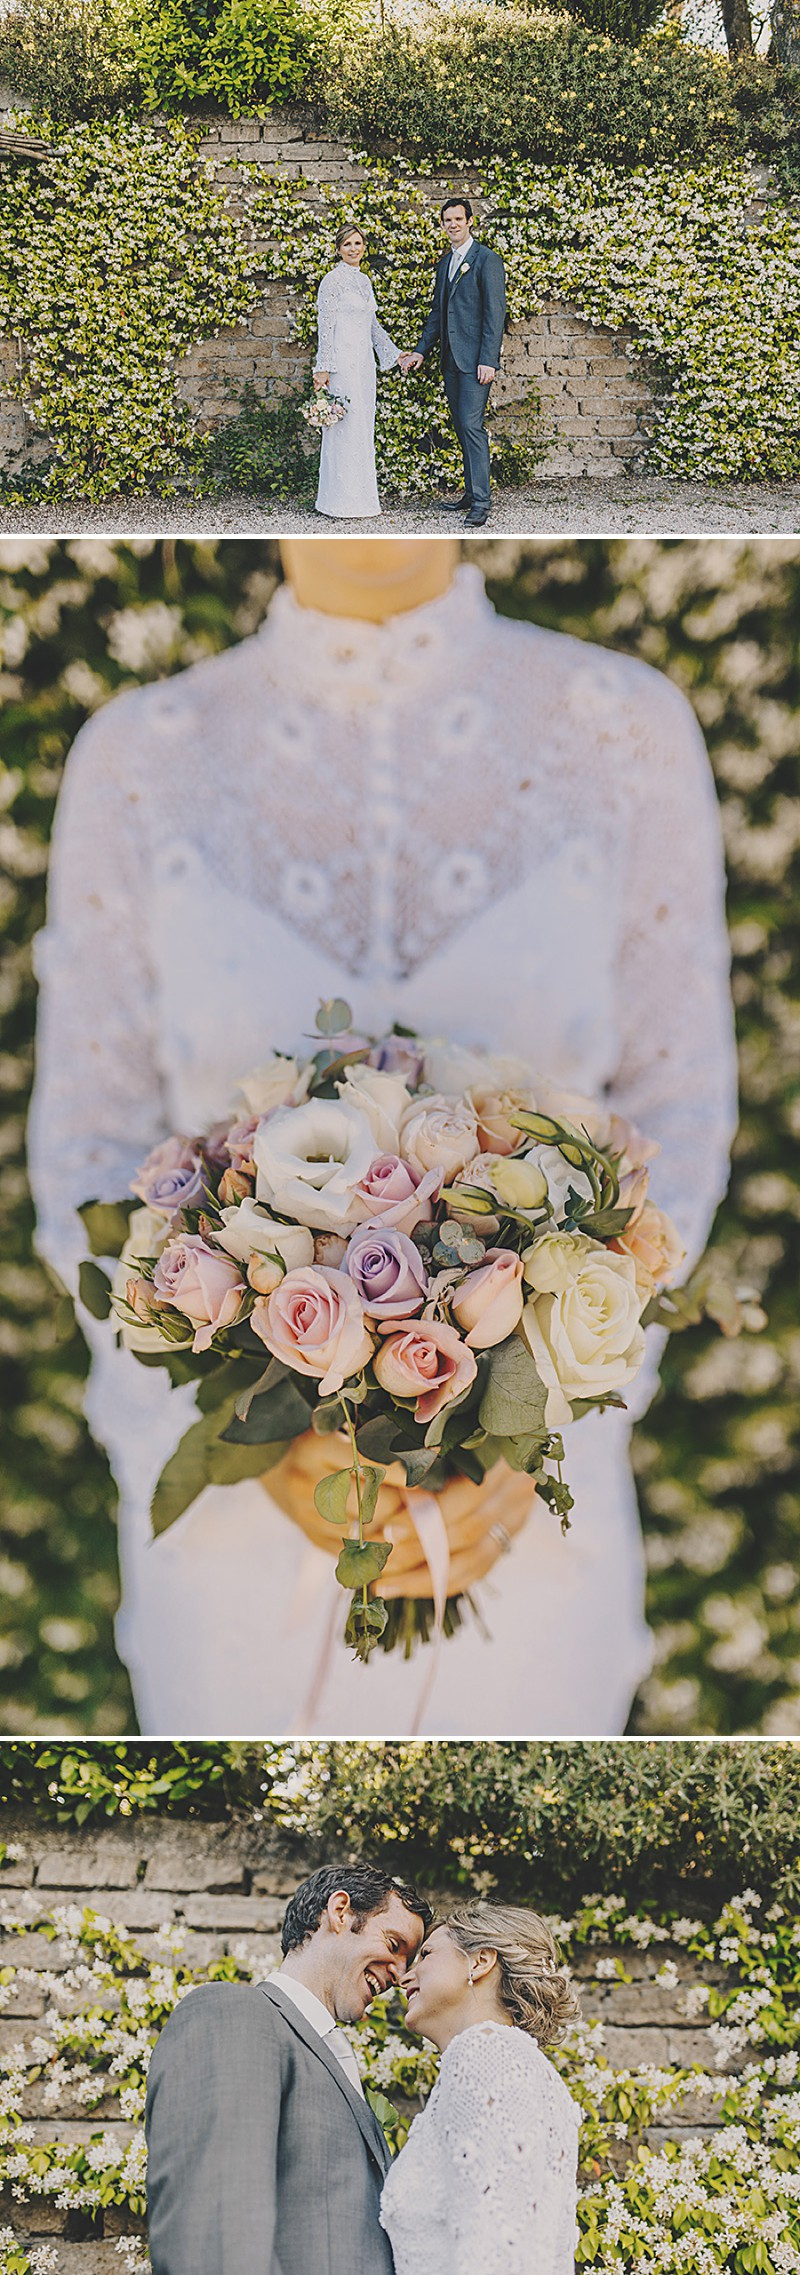 An Italian Destination Wedding At Borgo di Tragliata Near Rome With A Vintage Crotchet Wedding Dress and Sorbet Rose Bouquet Photographed By Mark Pacura._0004